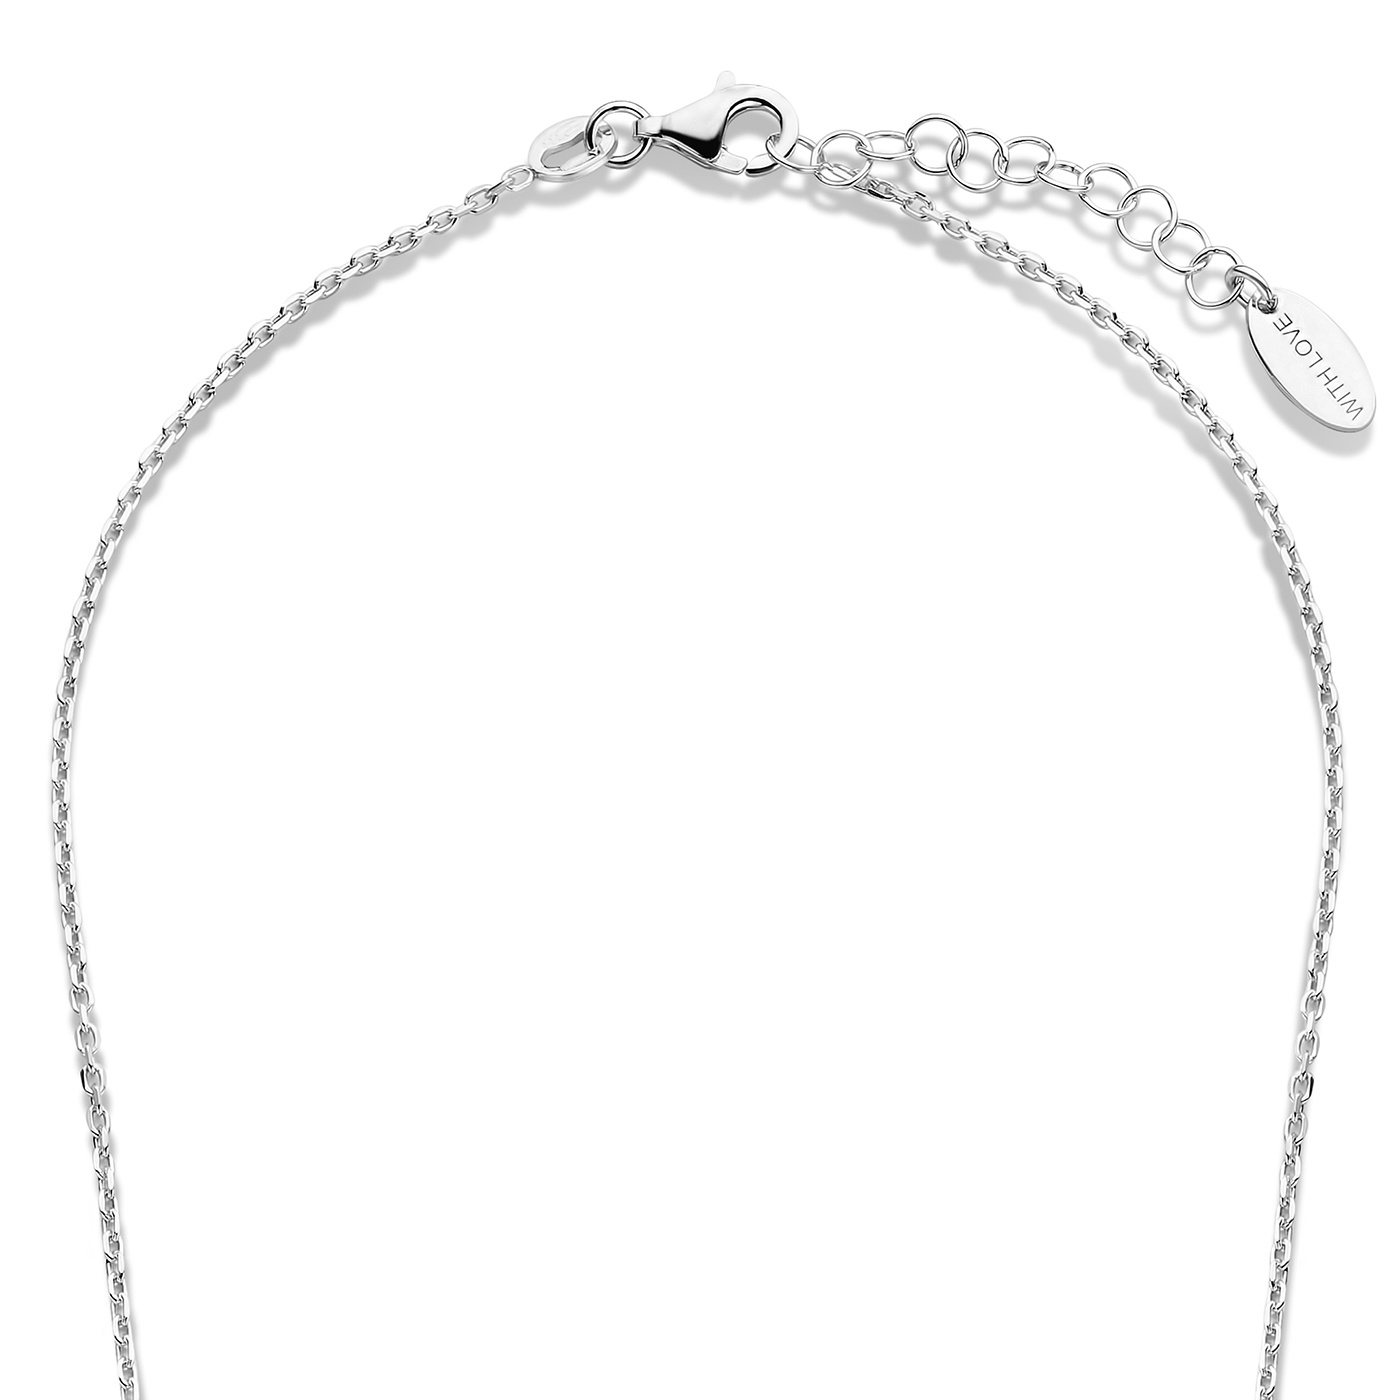 May Sparkle Forever Young Sunny 925 sterling silver necklace